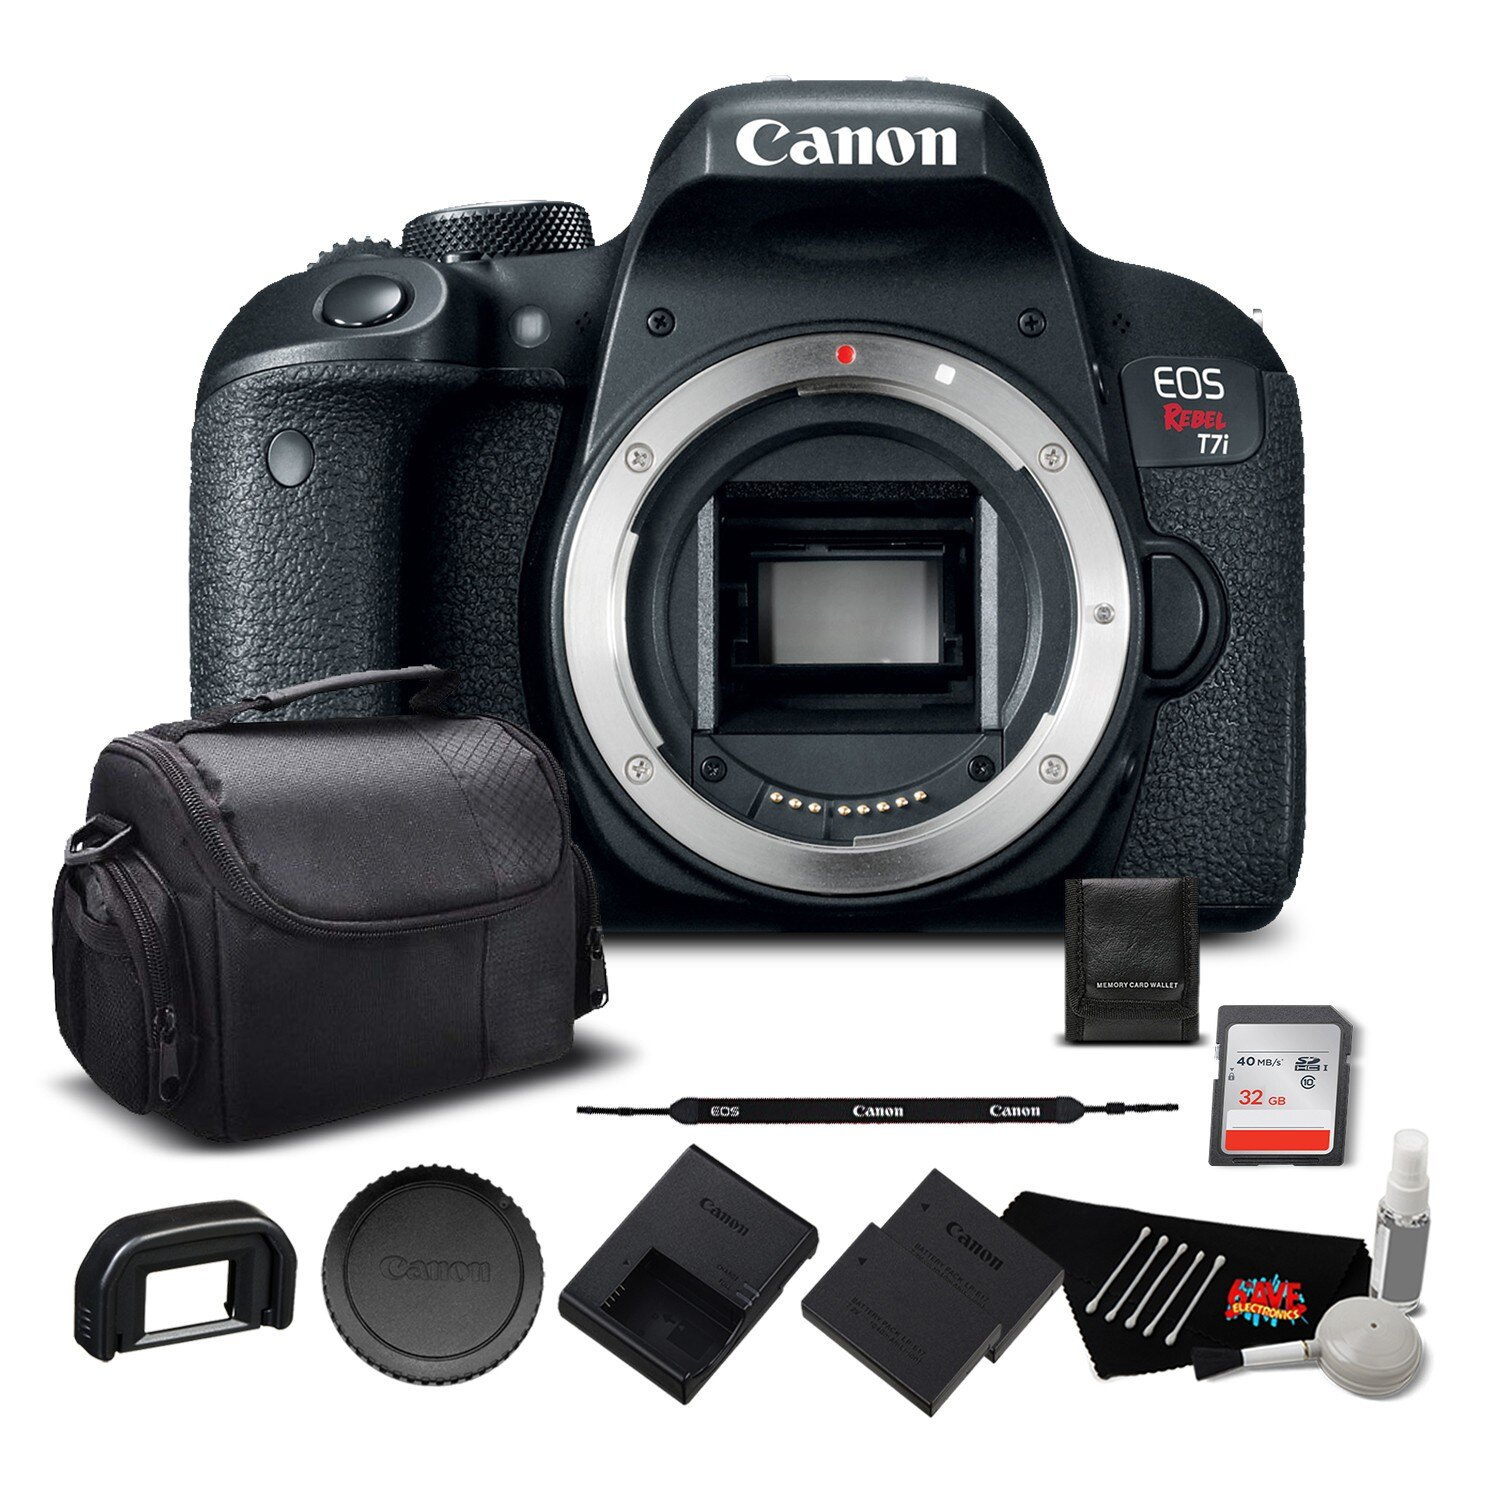 6ave Electronics: Canon EOS Rebel T7i Digital SLR Camera (Body Only) 1894C001 - Bundle with 32GB